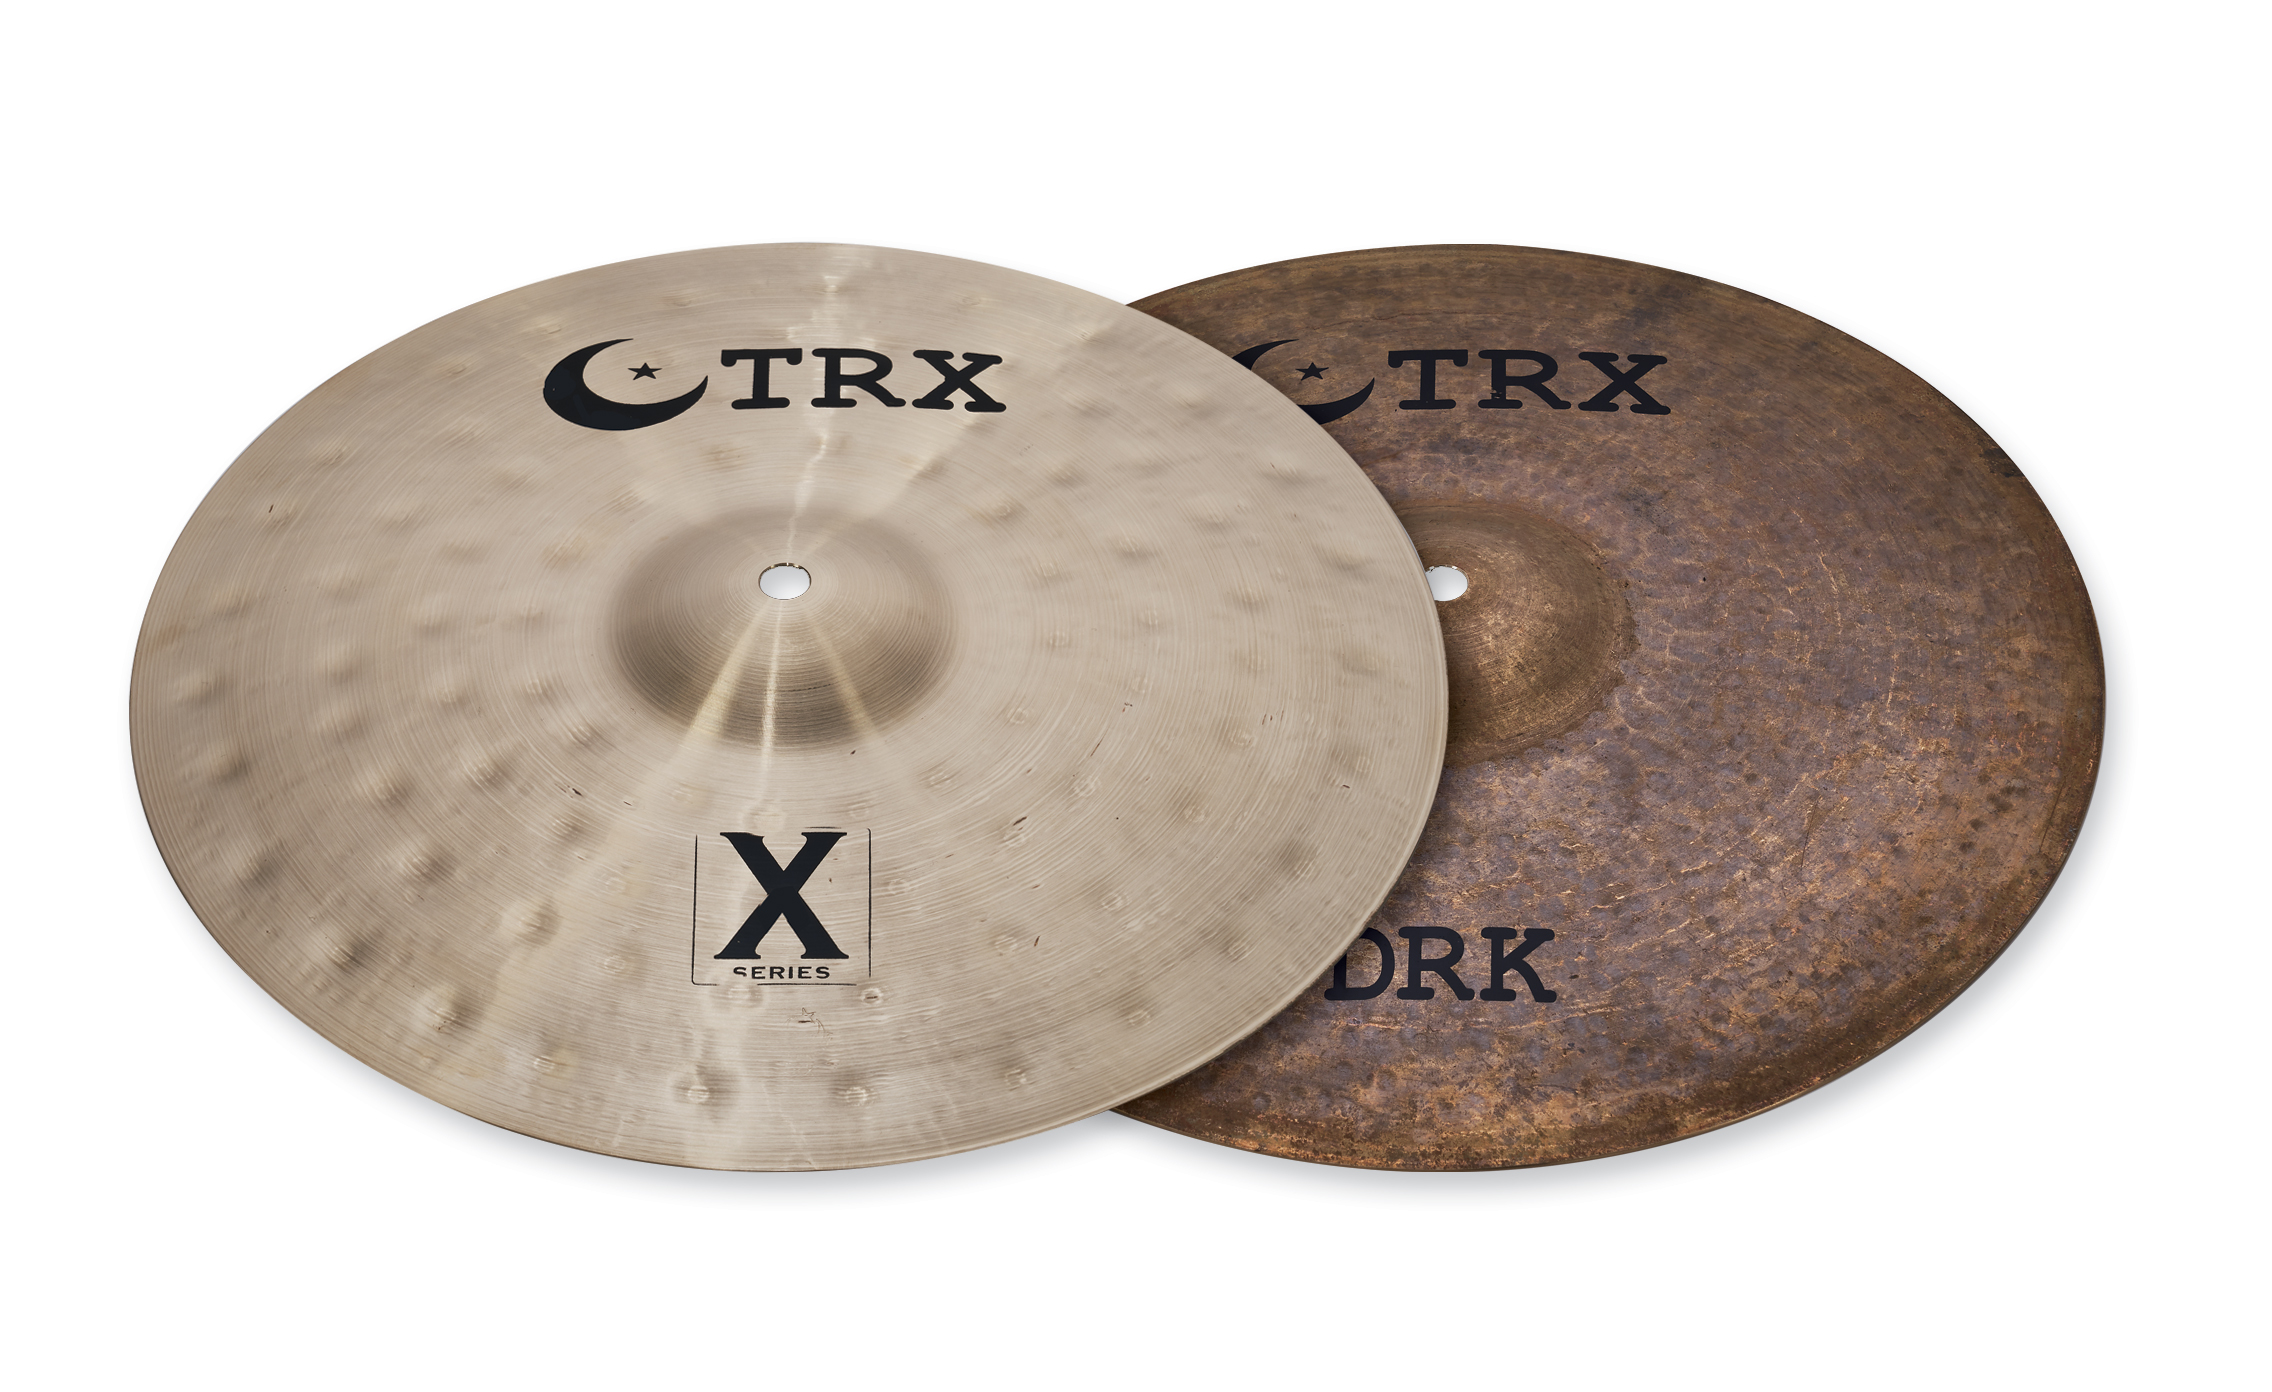 """New """"DRK-X"""" Cross-Matched High-Hats From TRX."""